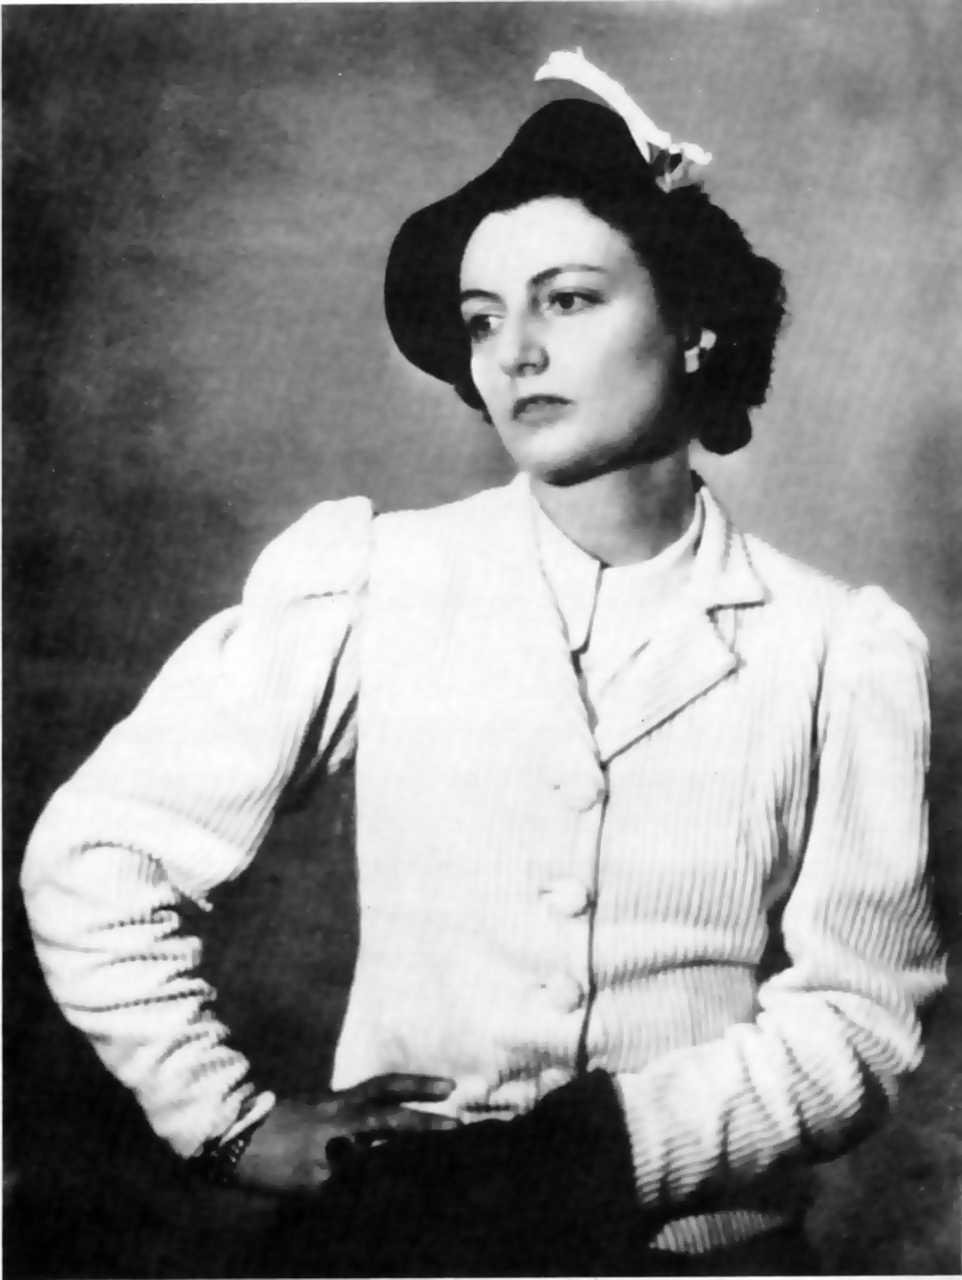 image for Camille, Georgette (1900-2000)